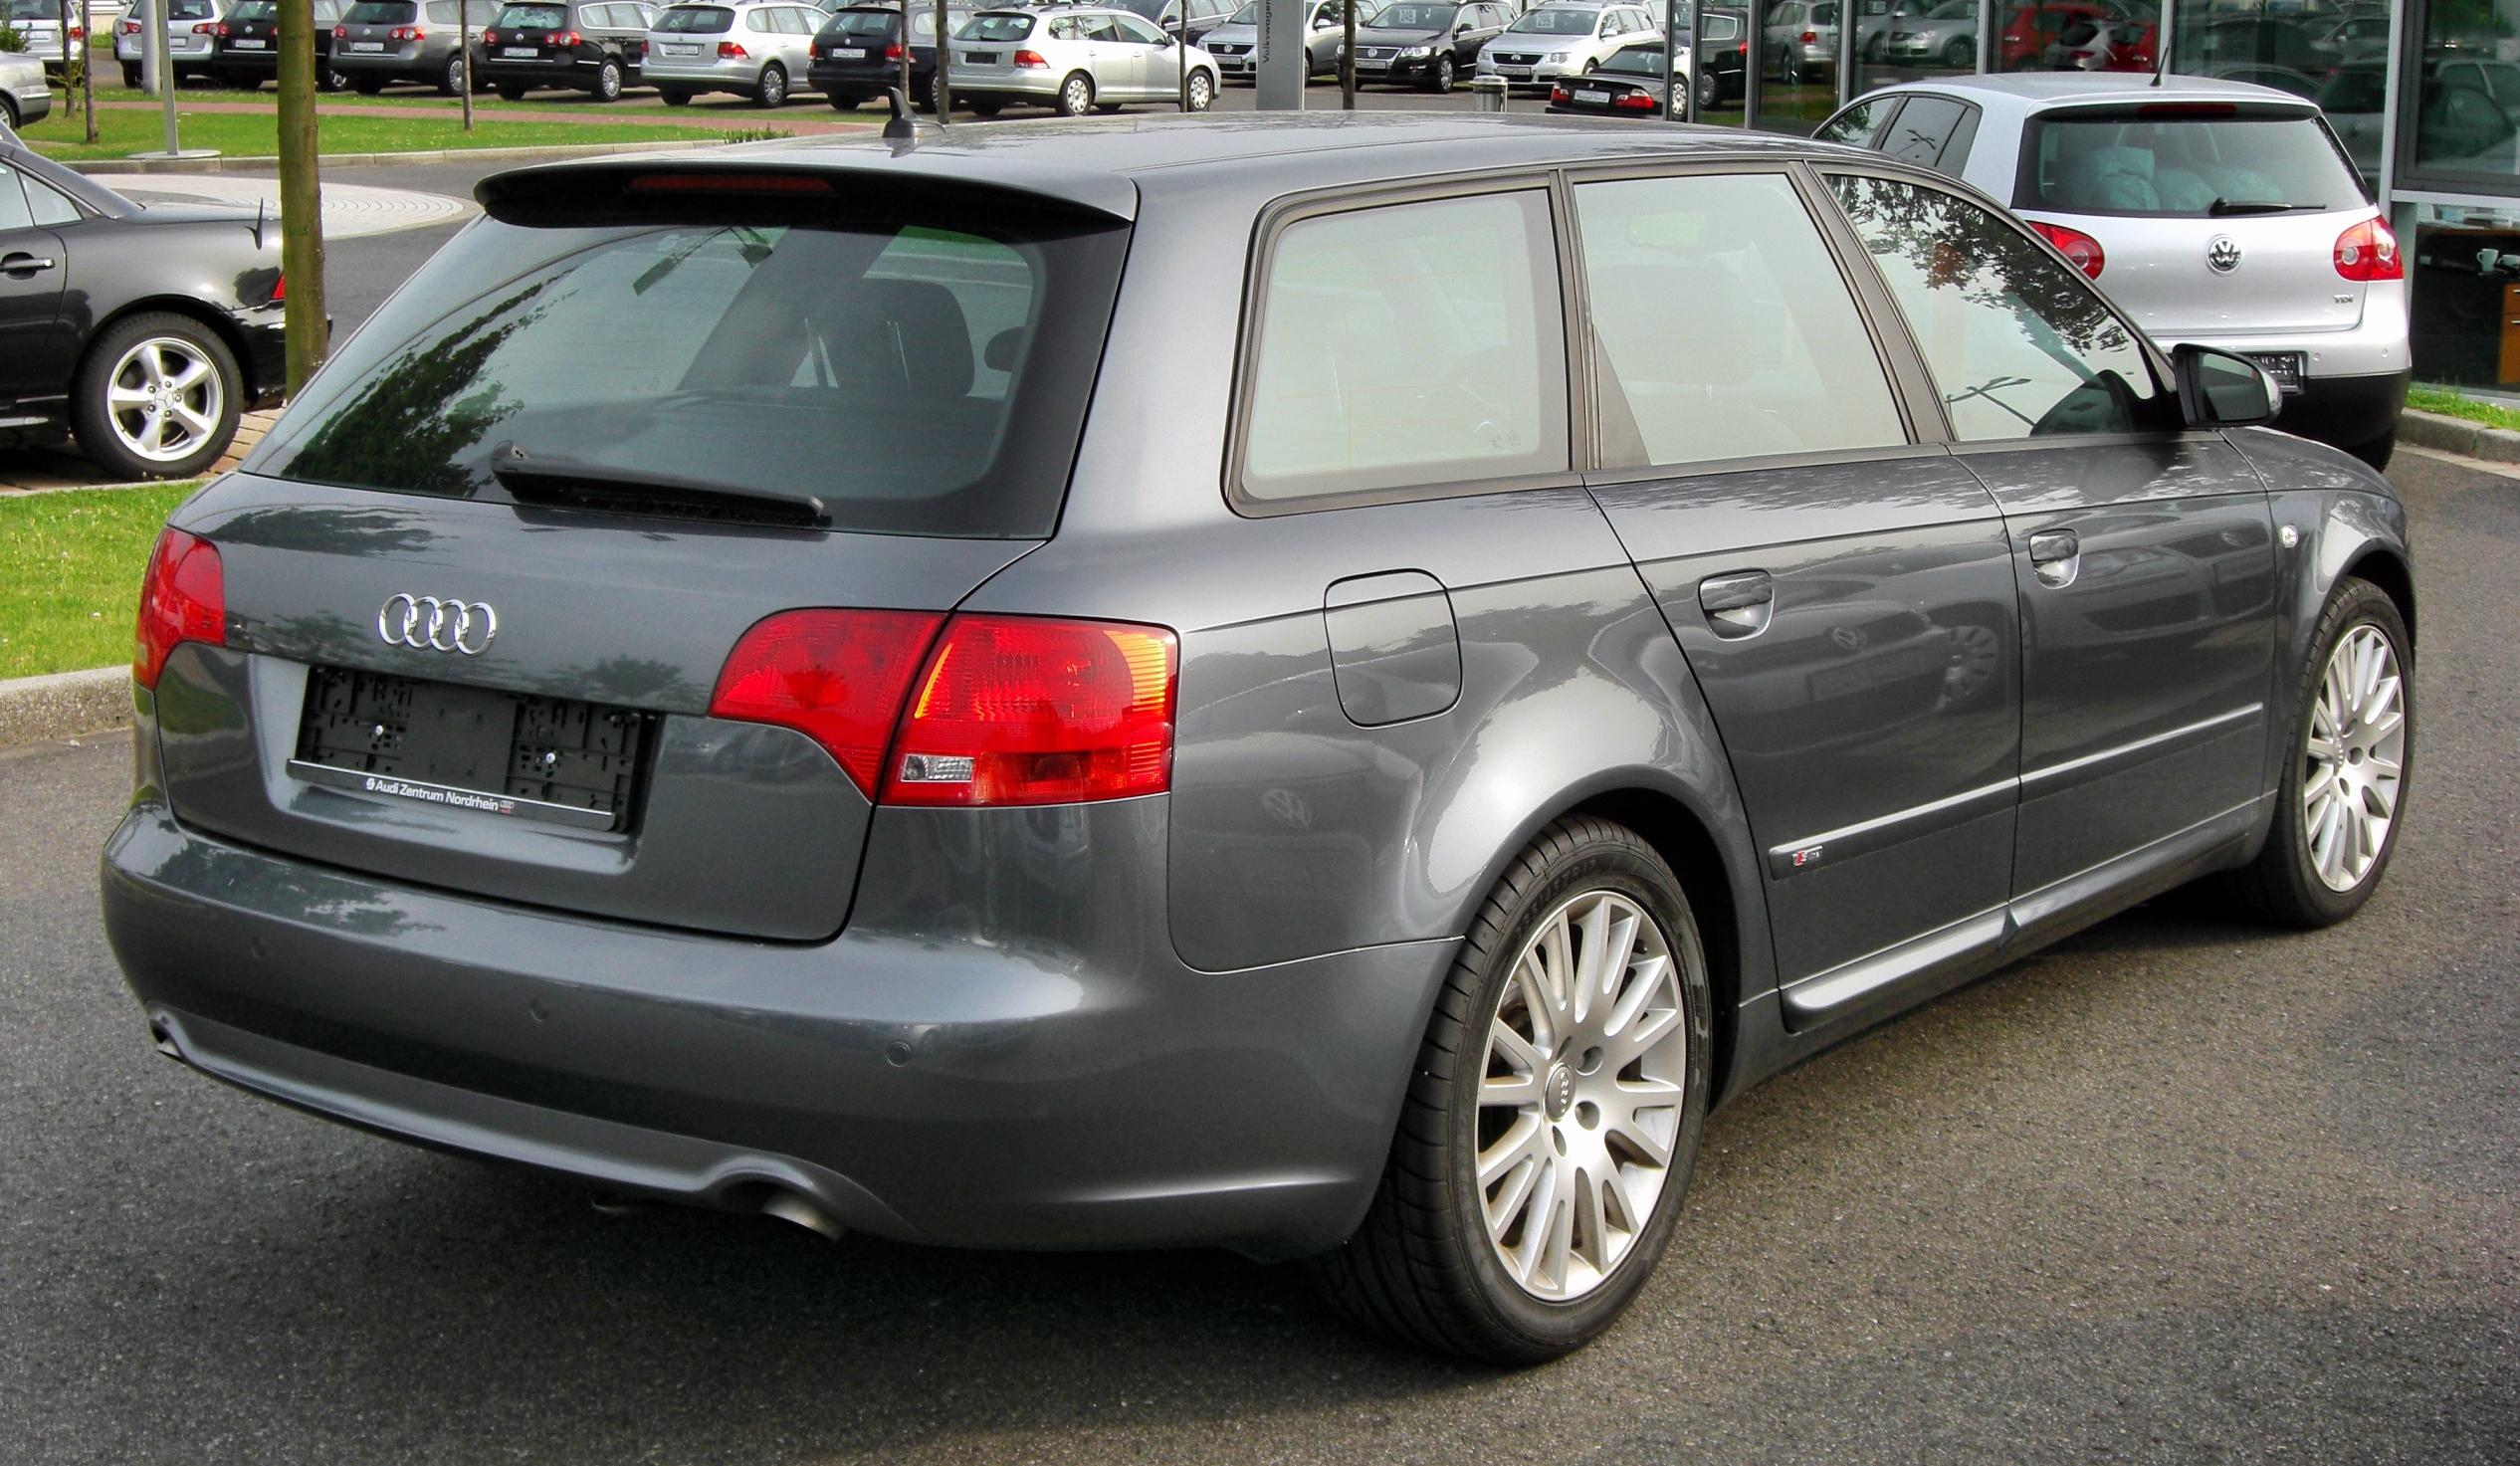 File Audi A4 B7 Avant S Line 20090809 Rear Jpg Wikimedia Commons